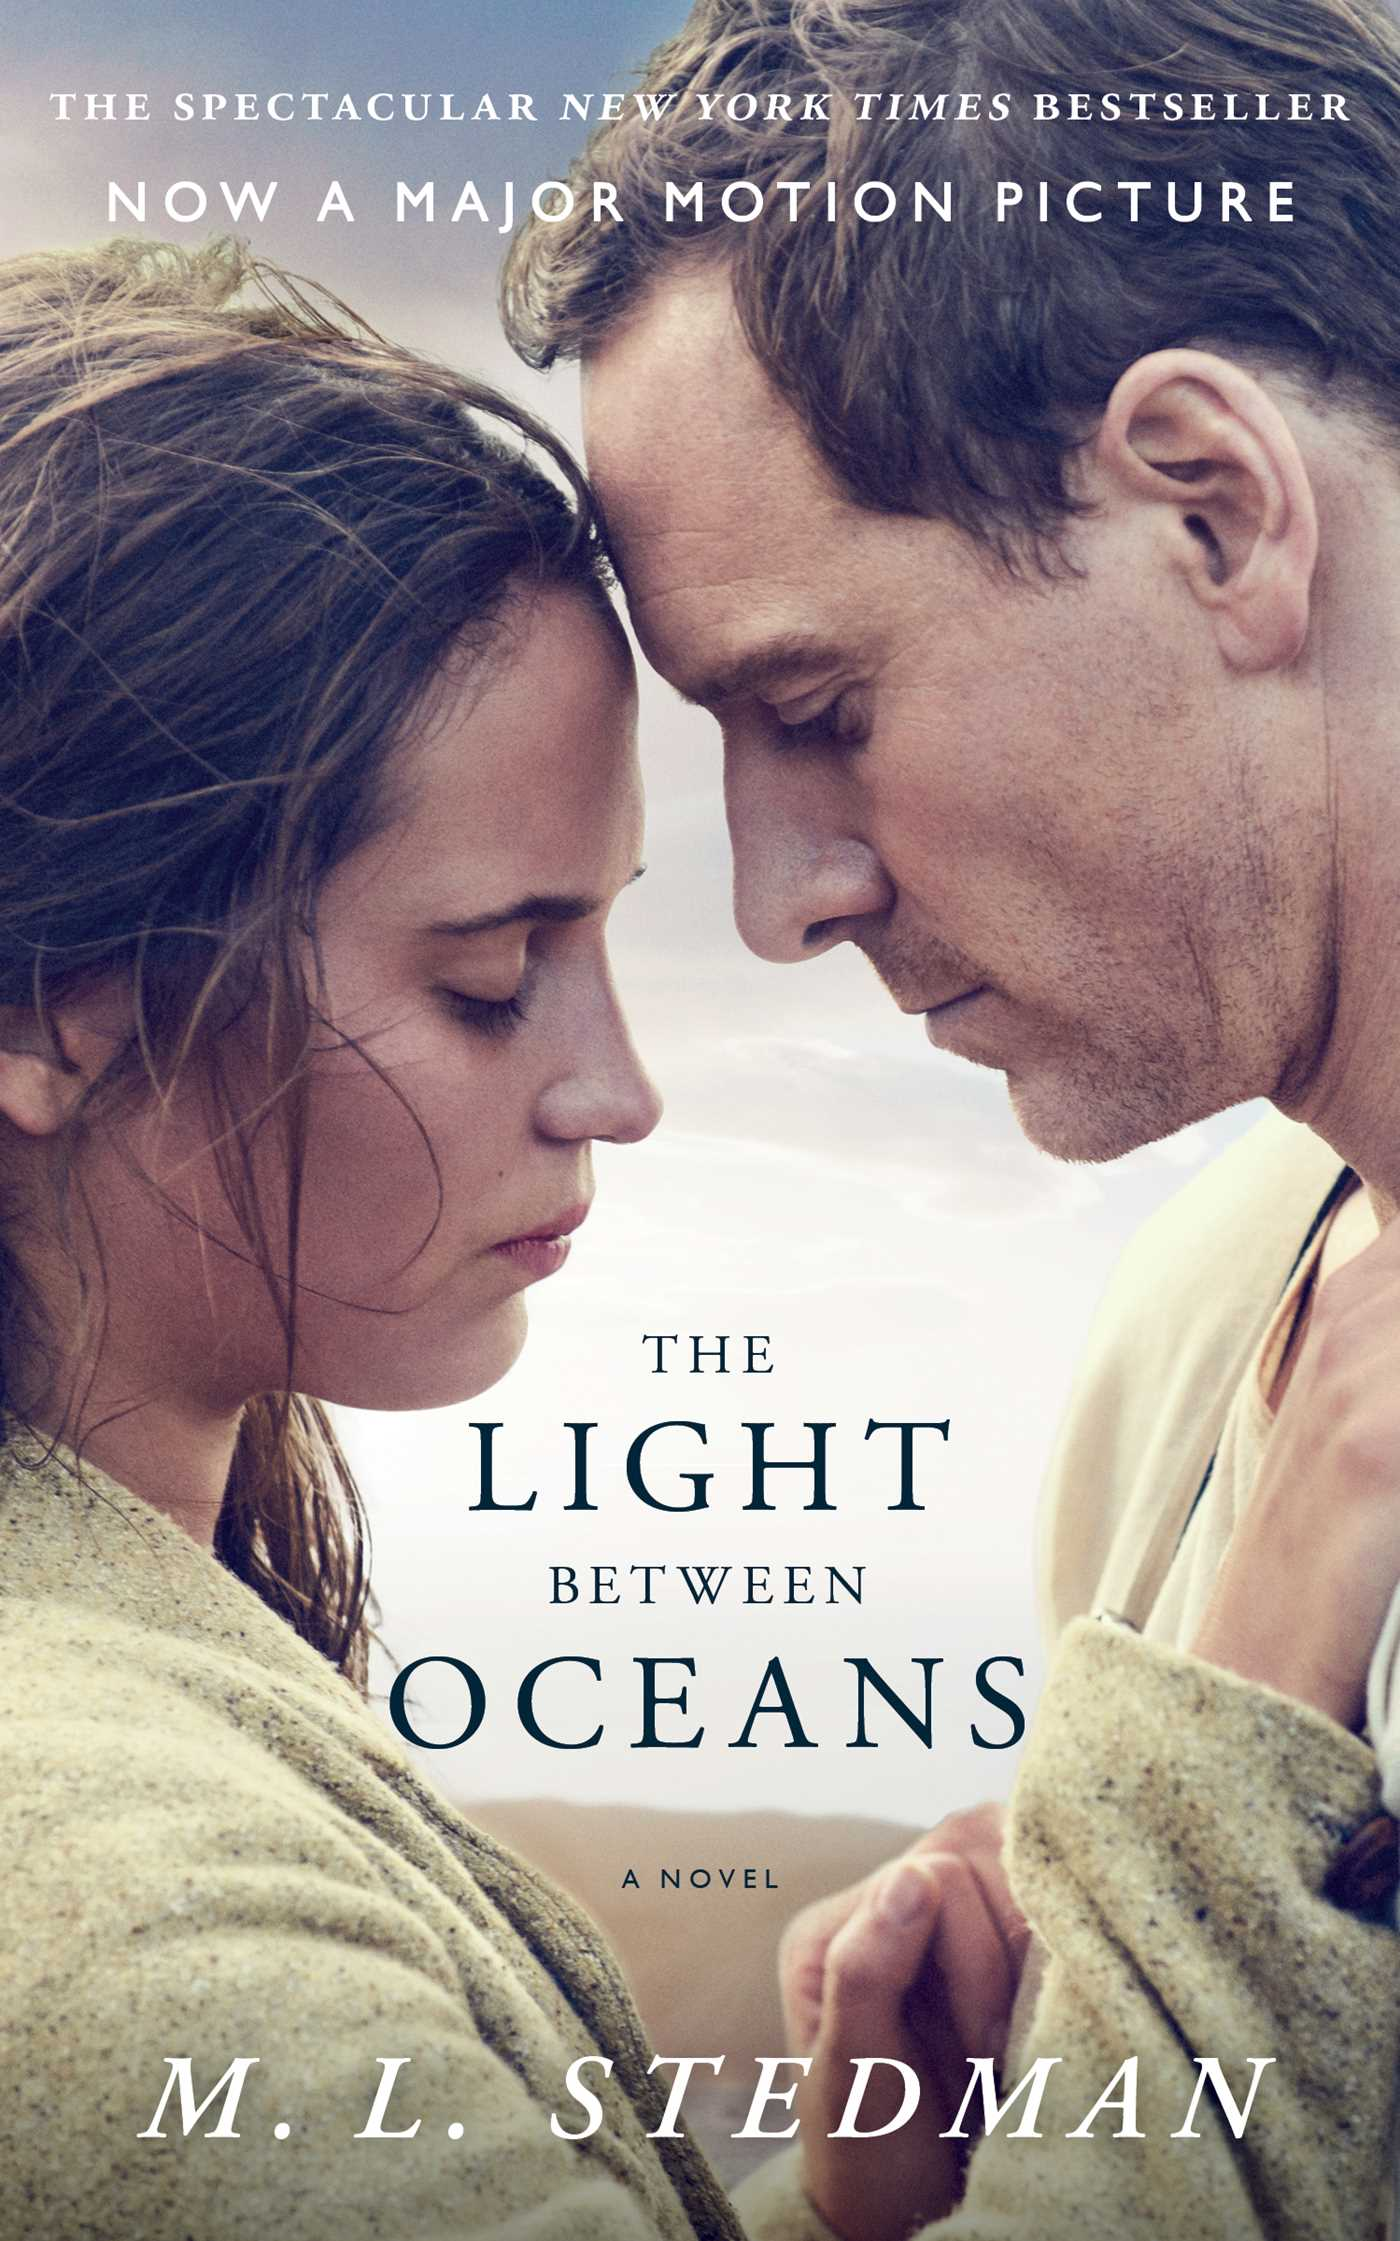 The light between oceans 9781451681765 hr